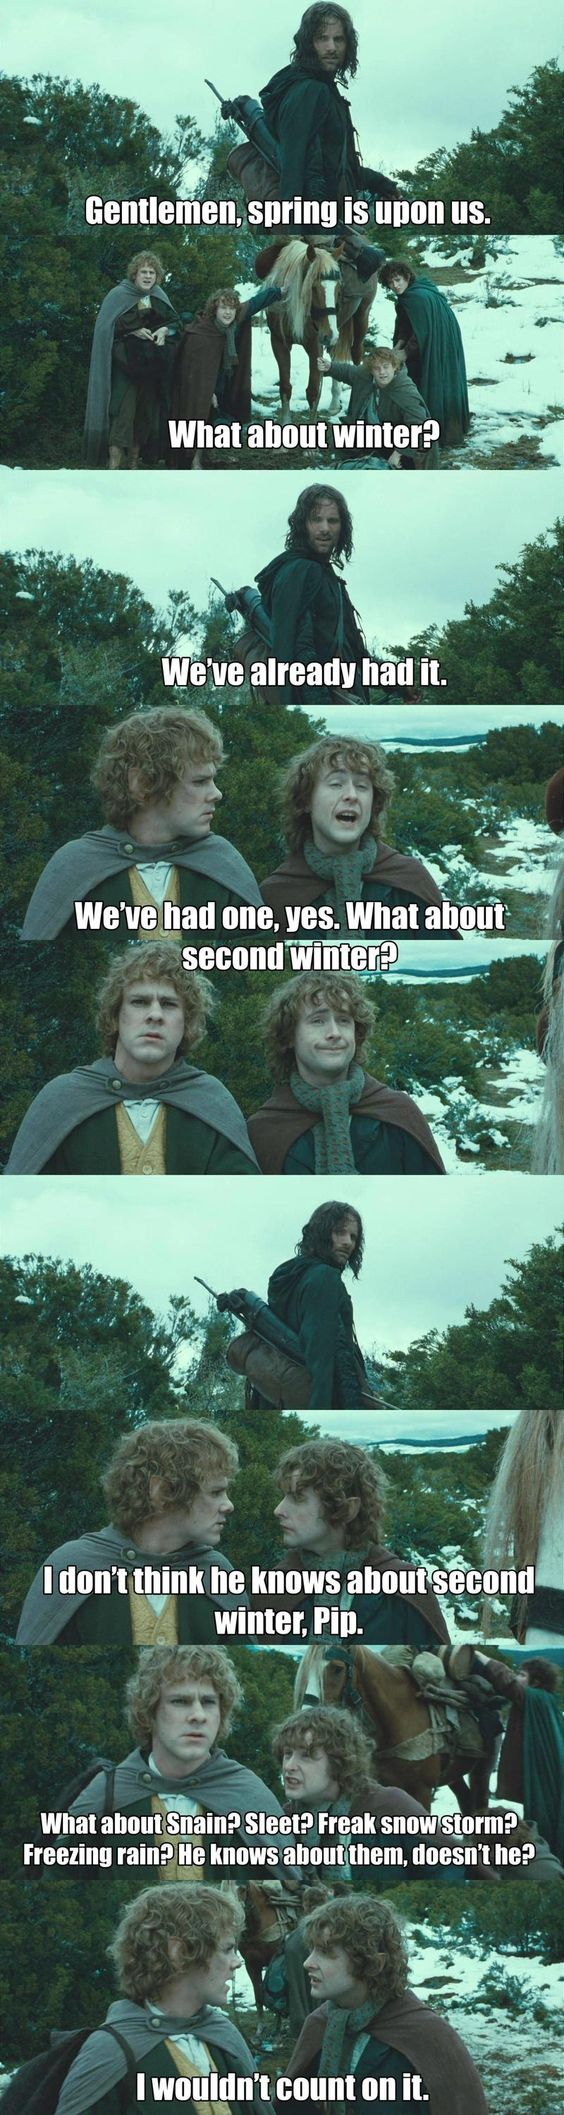 Poor Aragorn might be Spanish...